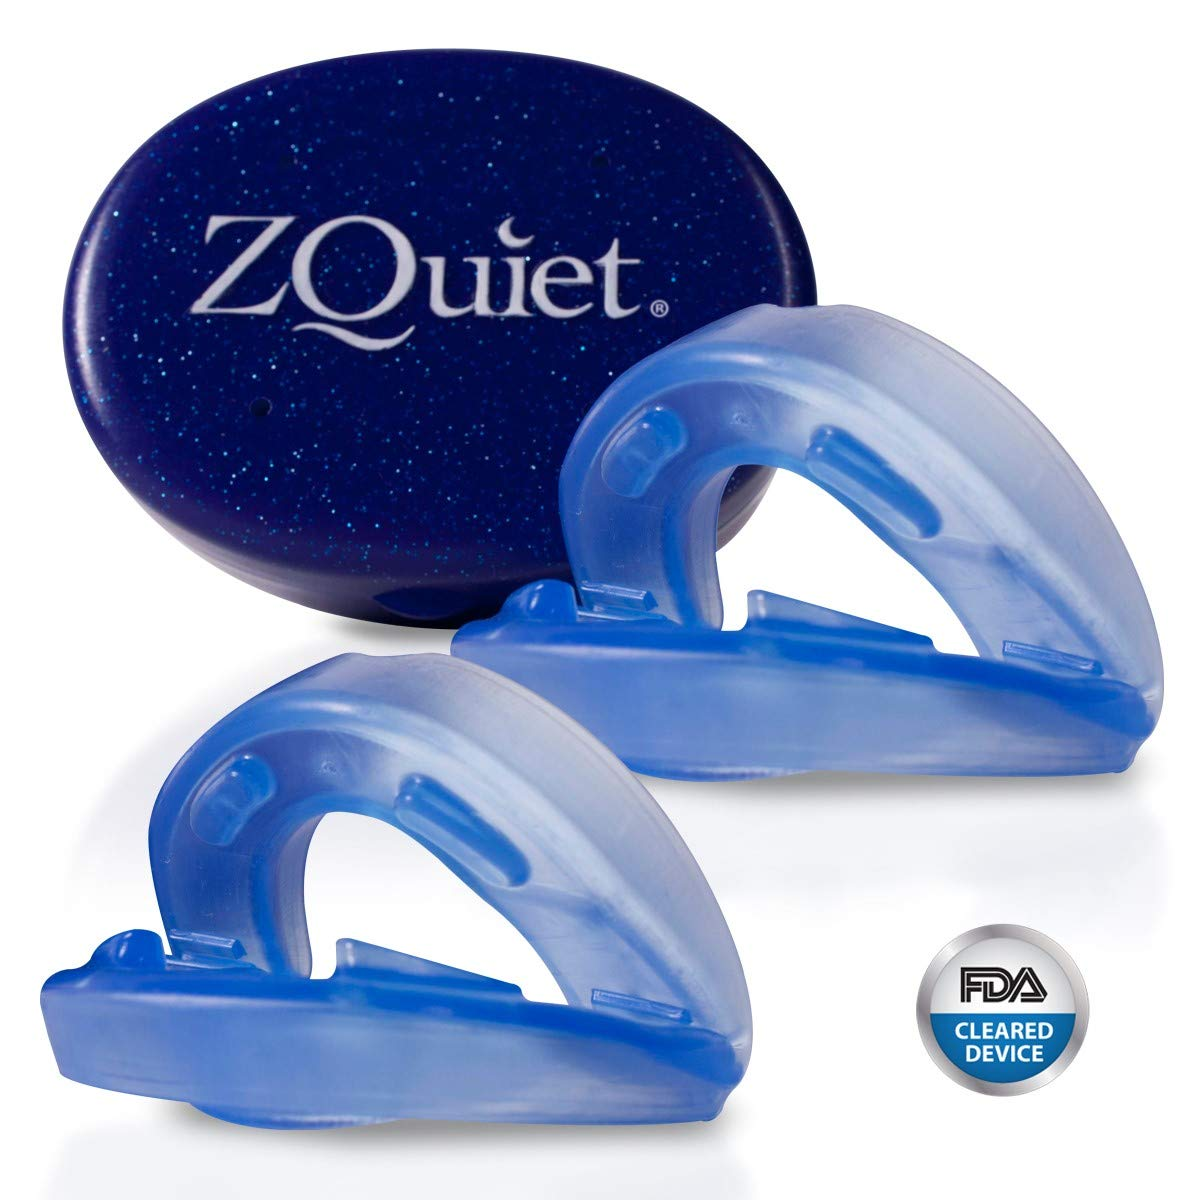 ZQuiet Anti-Snoring Treatment, 2-Size Comfort System Starter Kit, Set of 2 Sleep Aid Mouthpieces Plus Travel Case